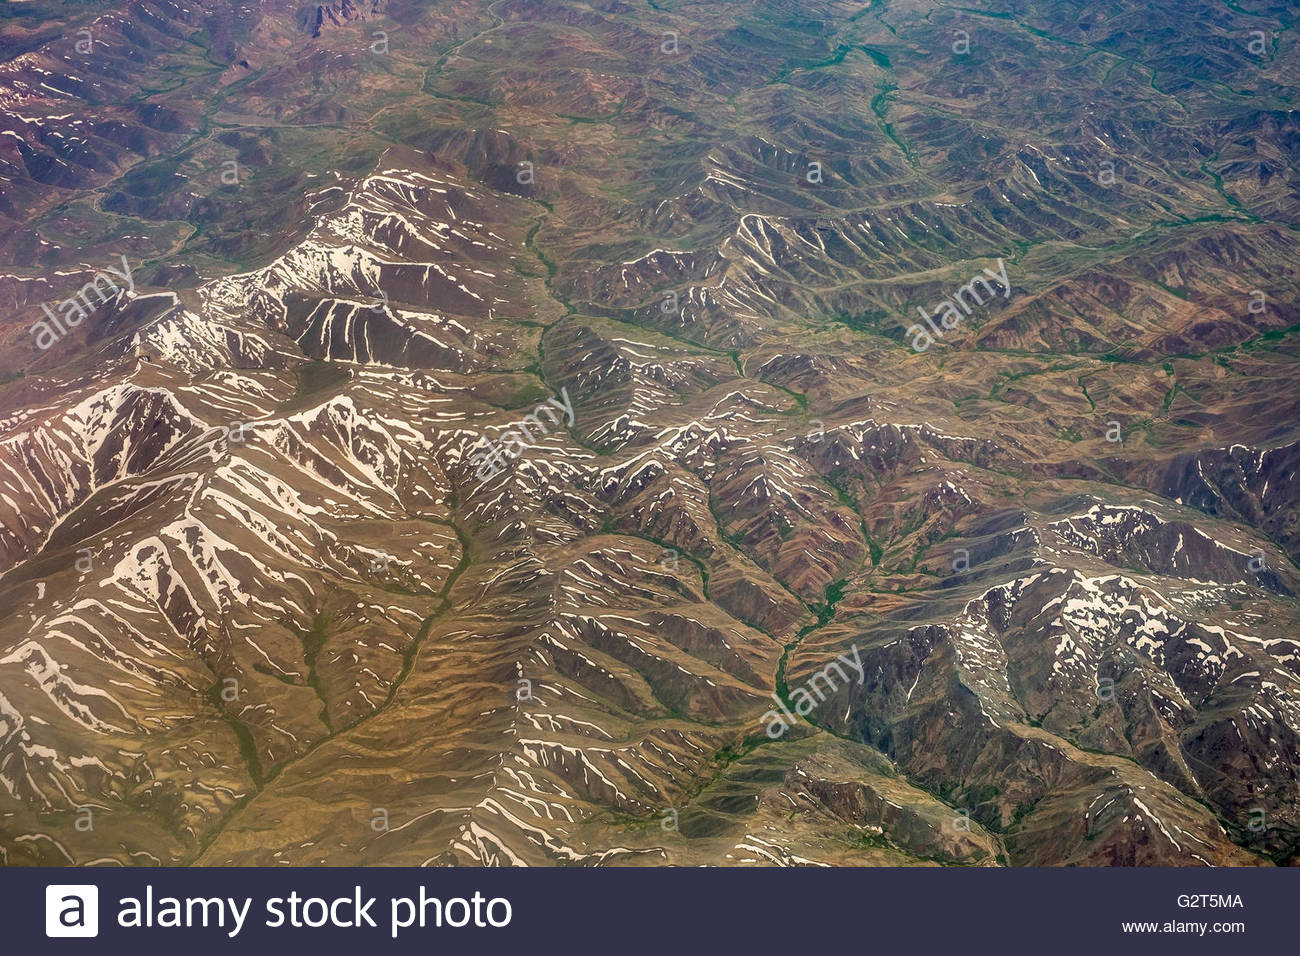 Aerial view of Kashmir mountains, near the border of Pakistan and Afghanistan - Stock Image